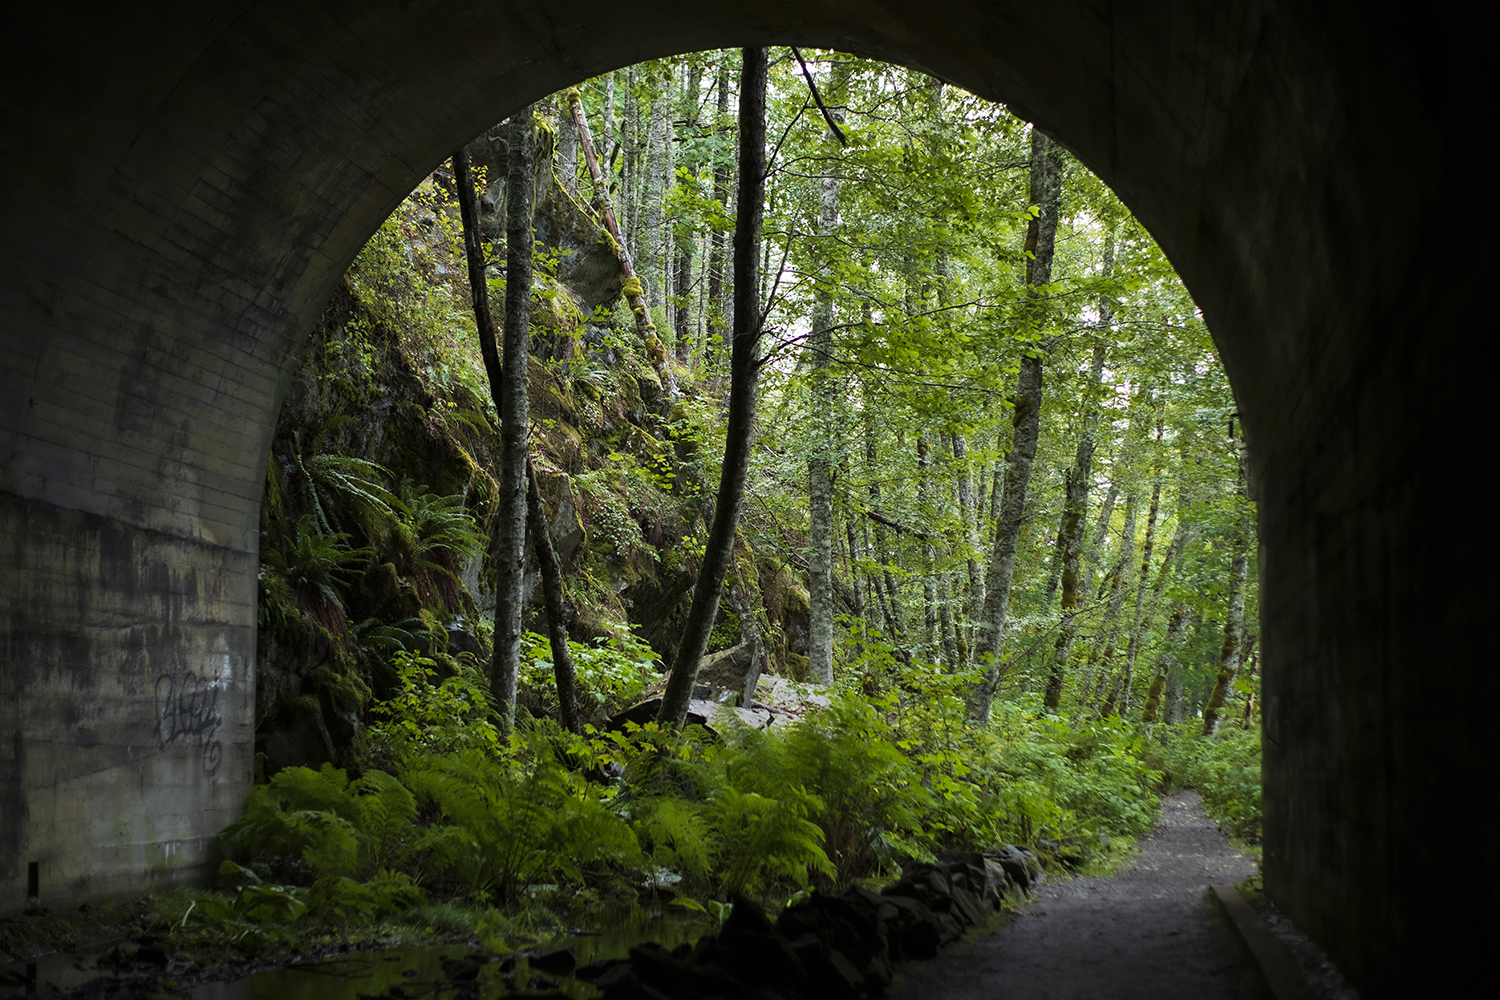 The lower grade trail allows access to the twin tunnels built in 1916. Inside, water drips from the falling rain outside and pools in the center of the arched opening.{ }(Image: Rachael Jones / Seattle Refined)